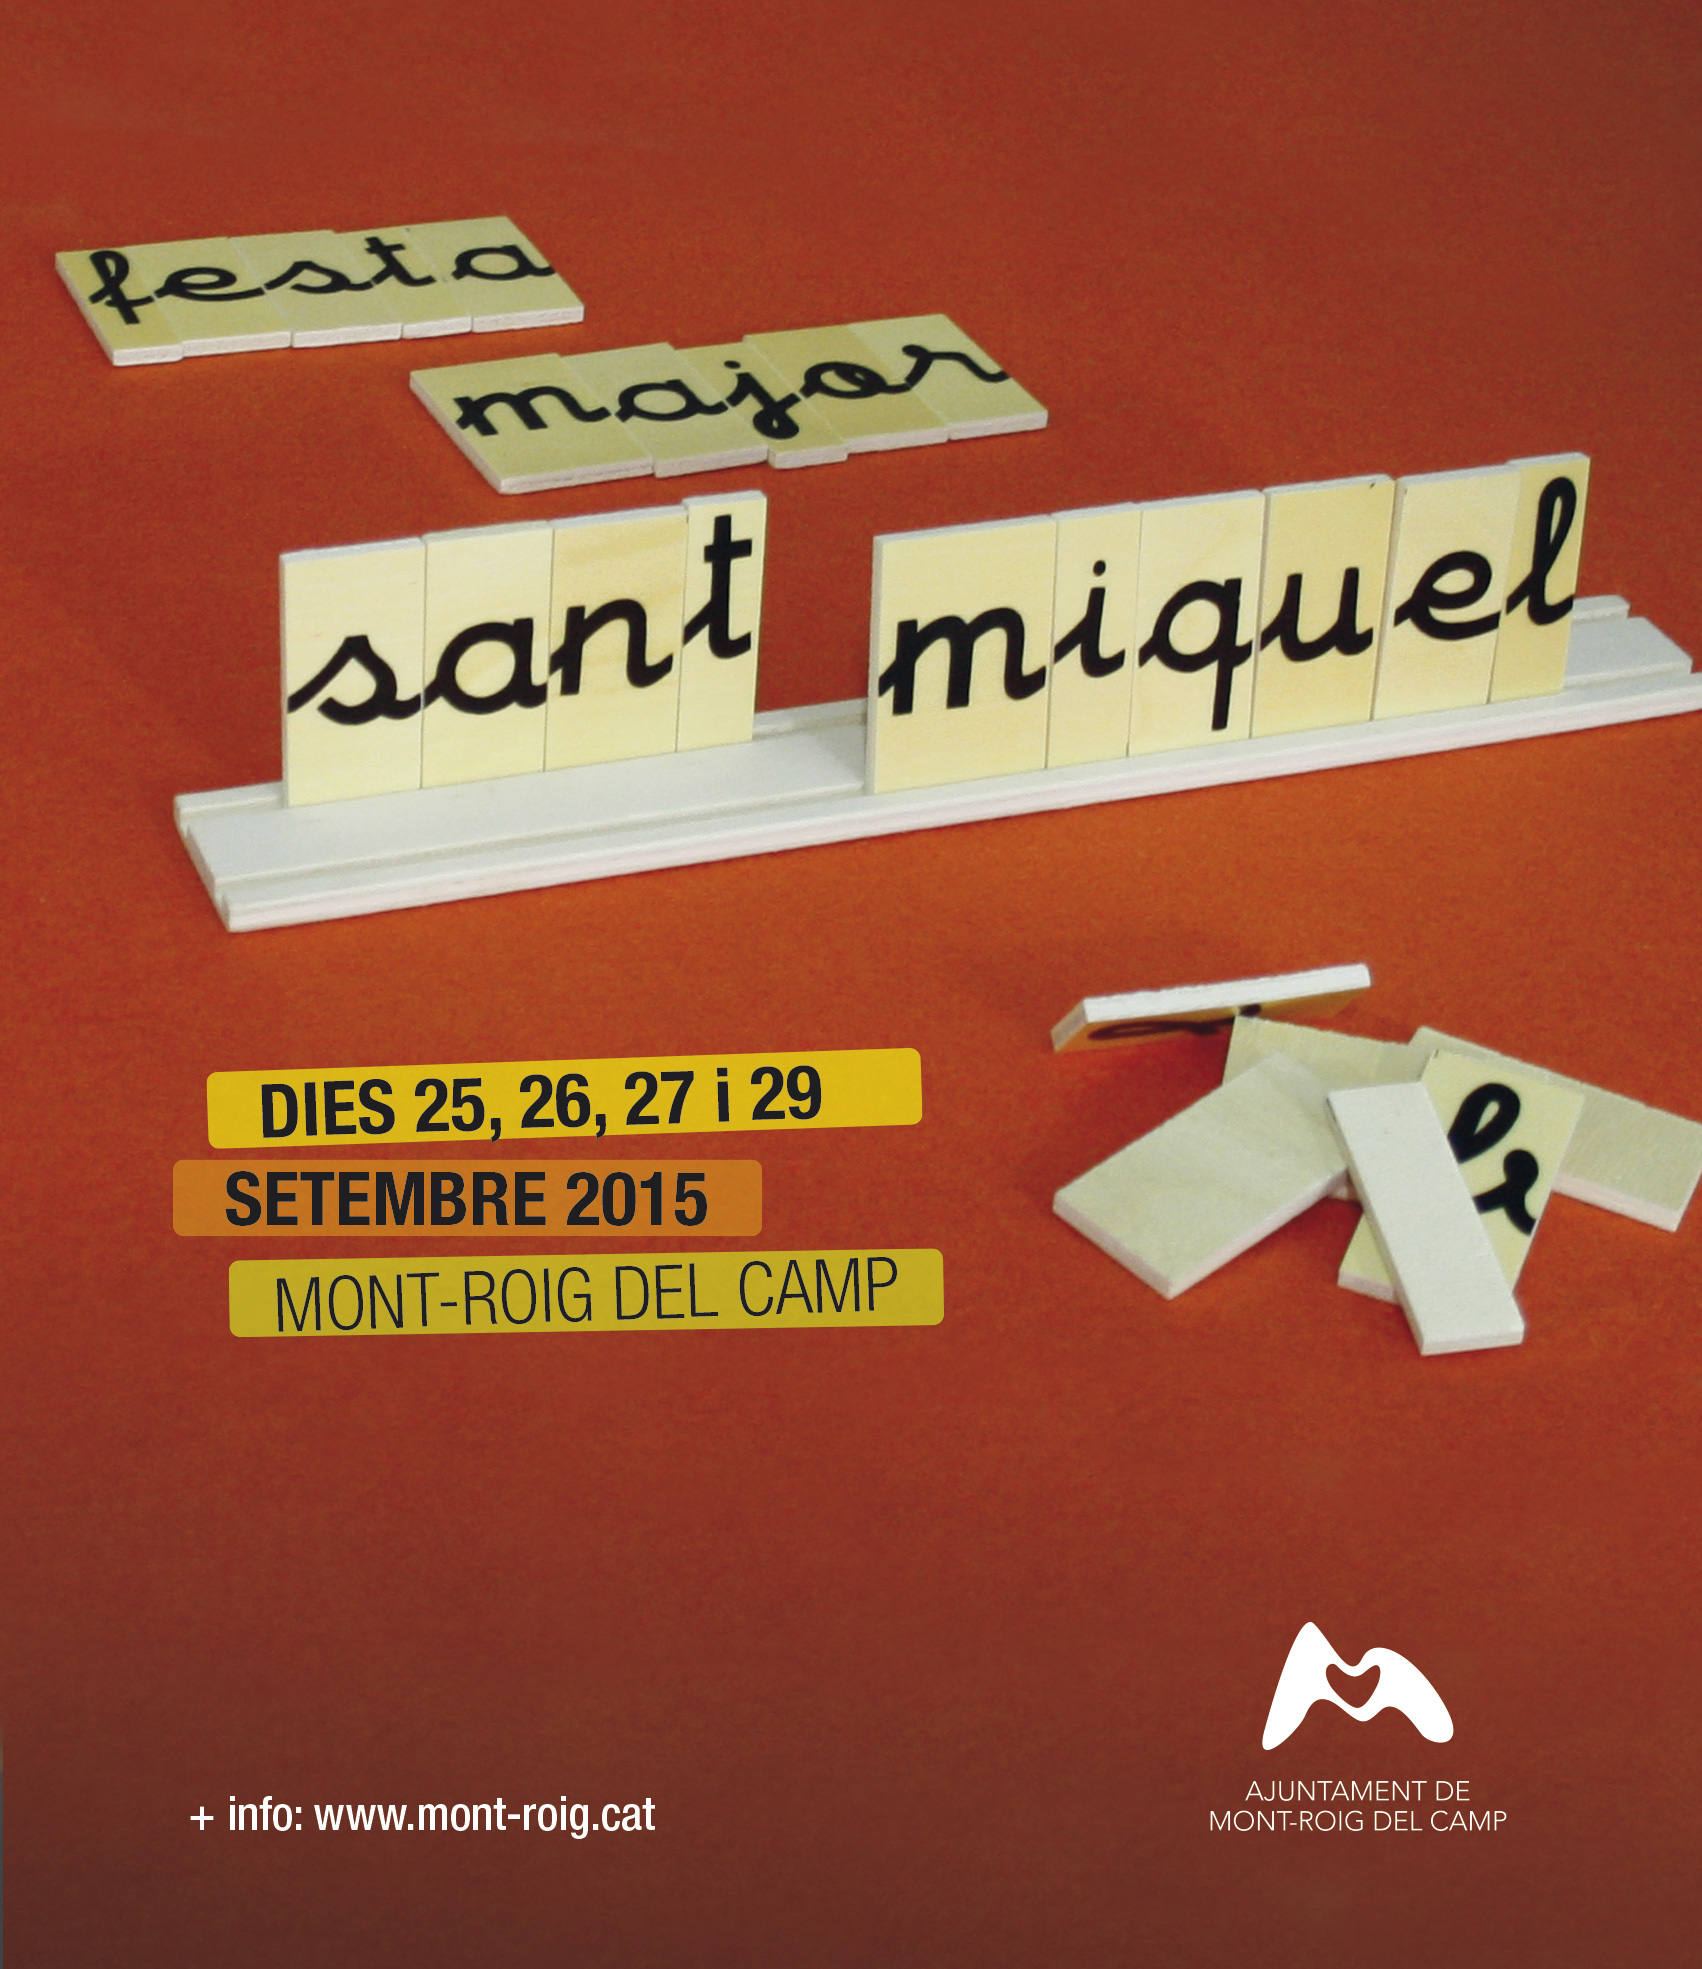 Fiesta Mayor Sant Miquel 2015